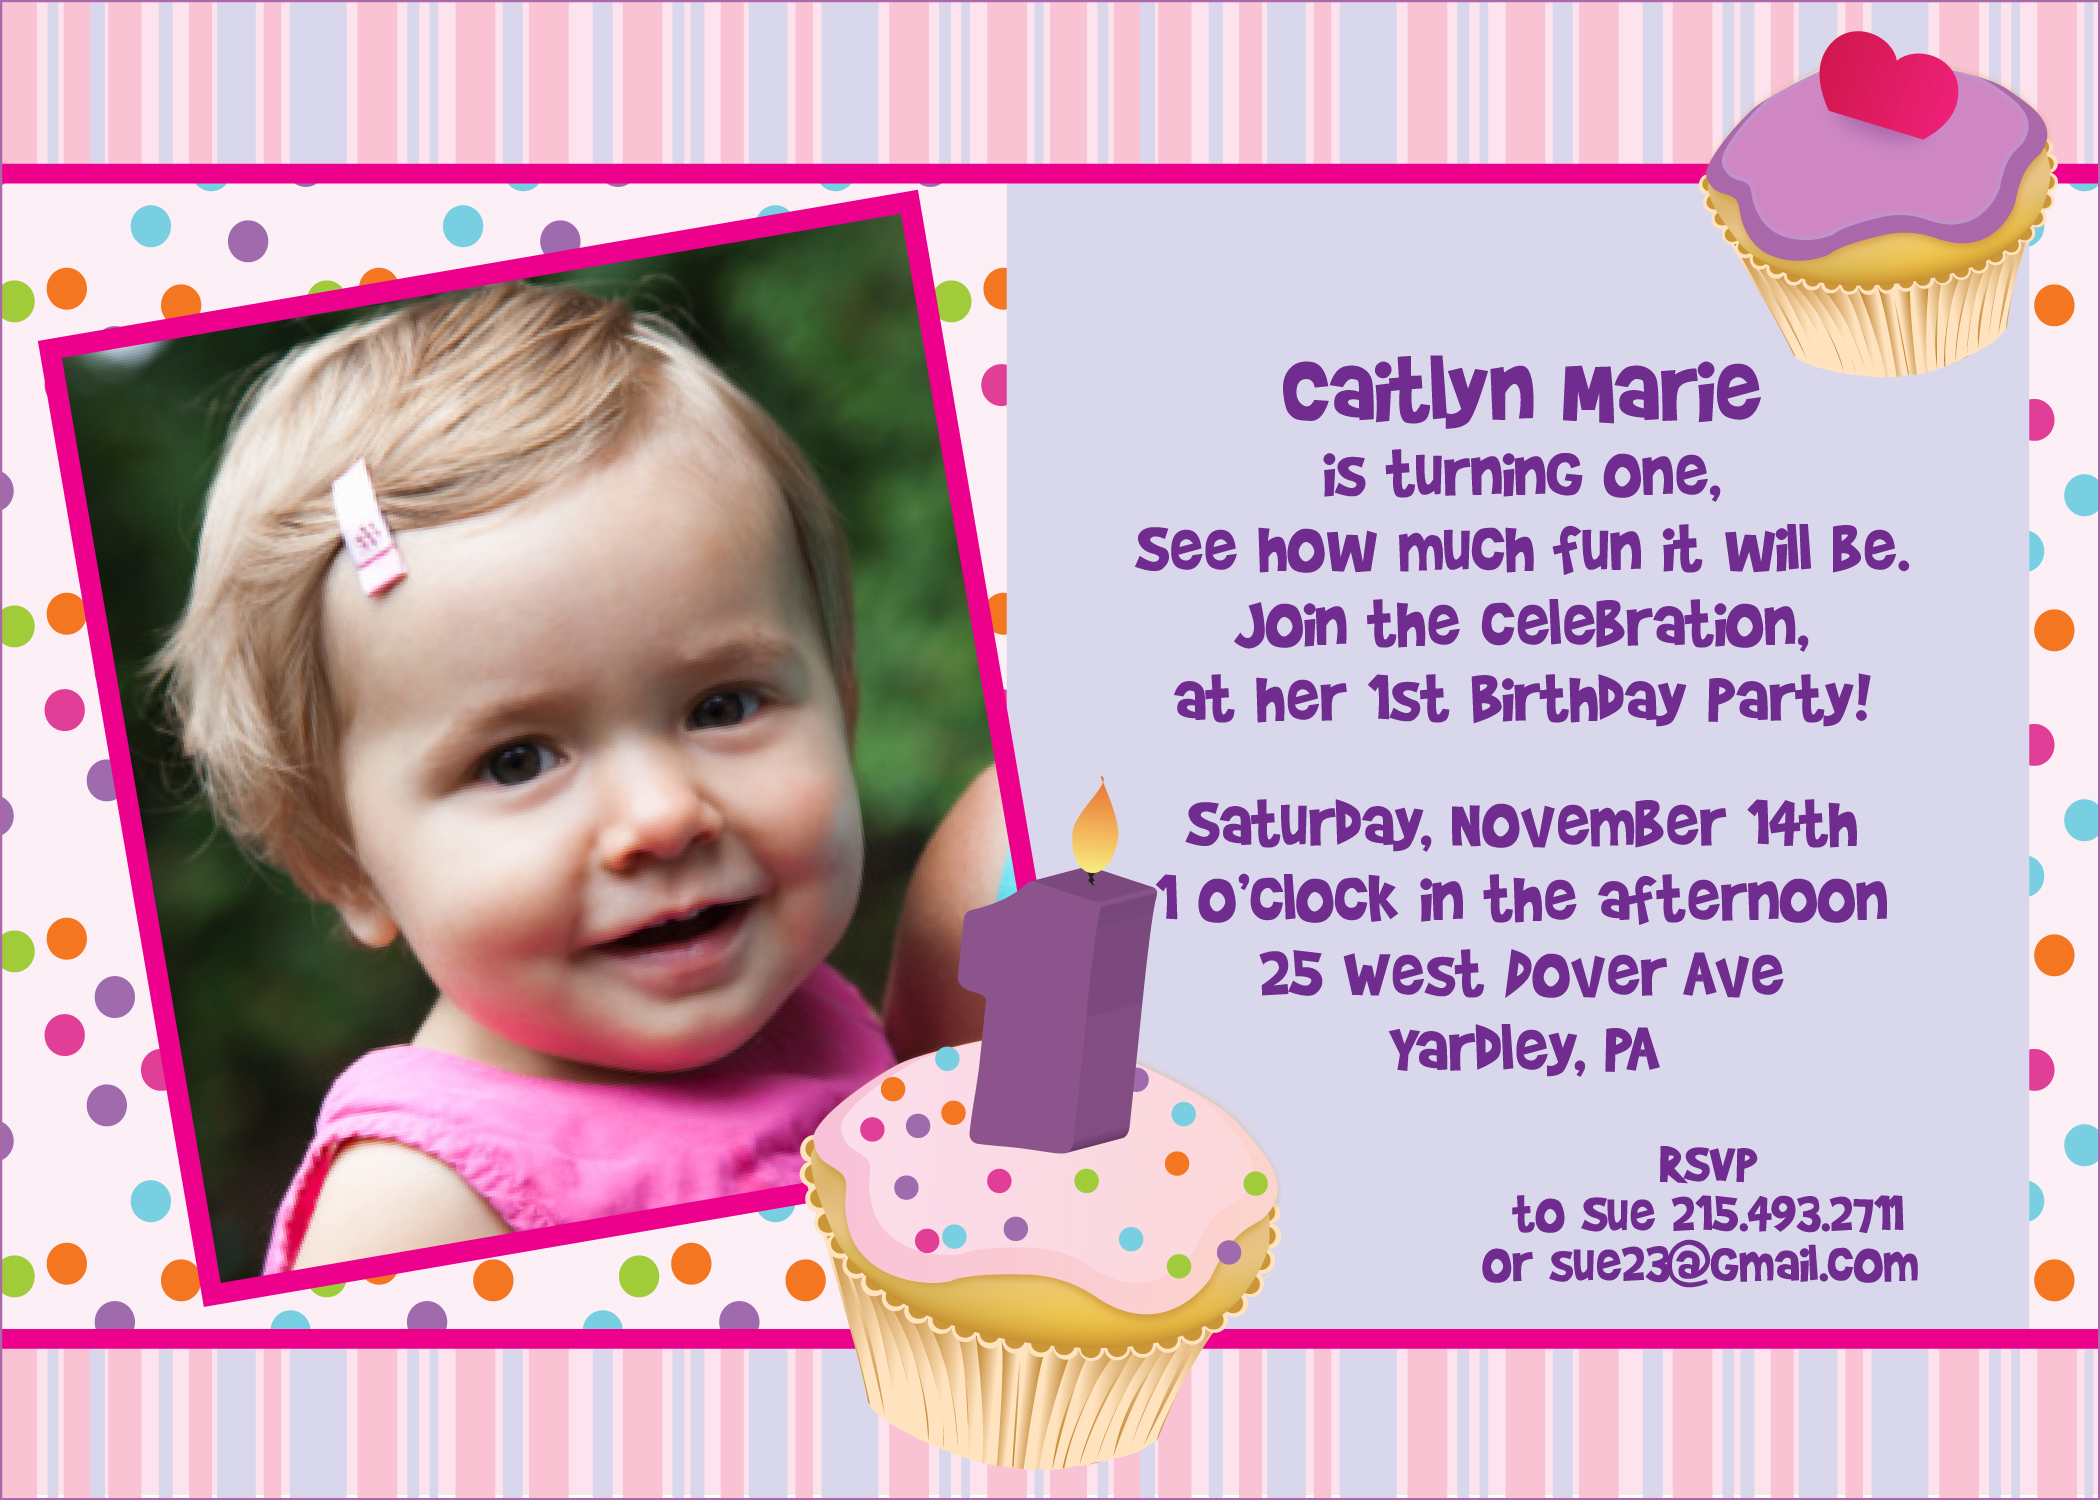 1st birthday invitation ideas ; 1St-Birthday-Invitation-Wording-is-one-of-the-right-art-to-perfect-your-invitation-ideas-17